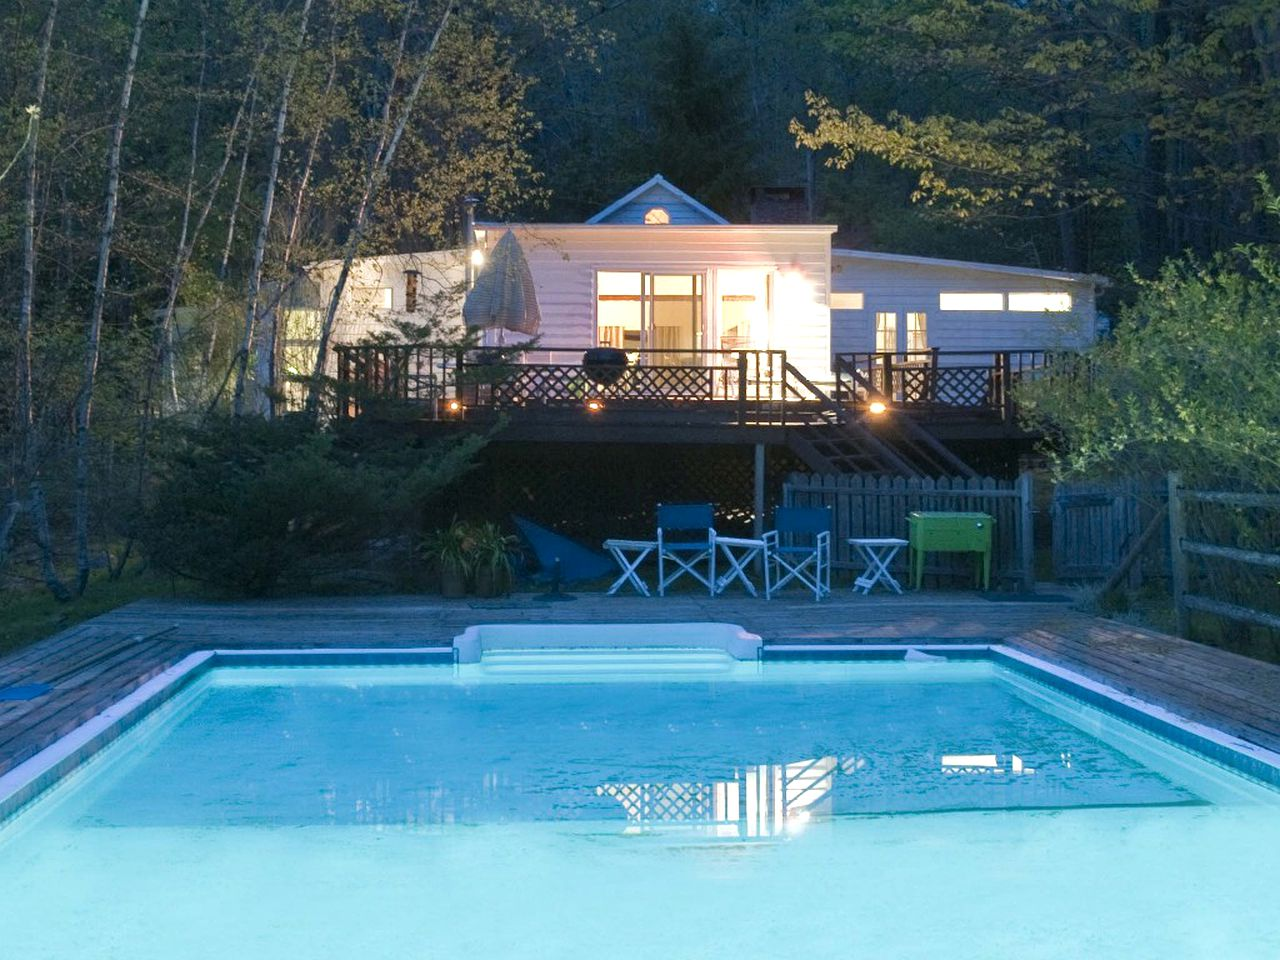 Cottage pool in Woodstock, New York.